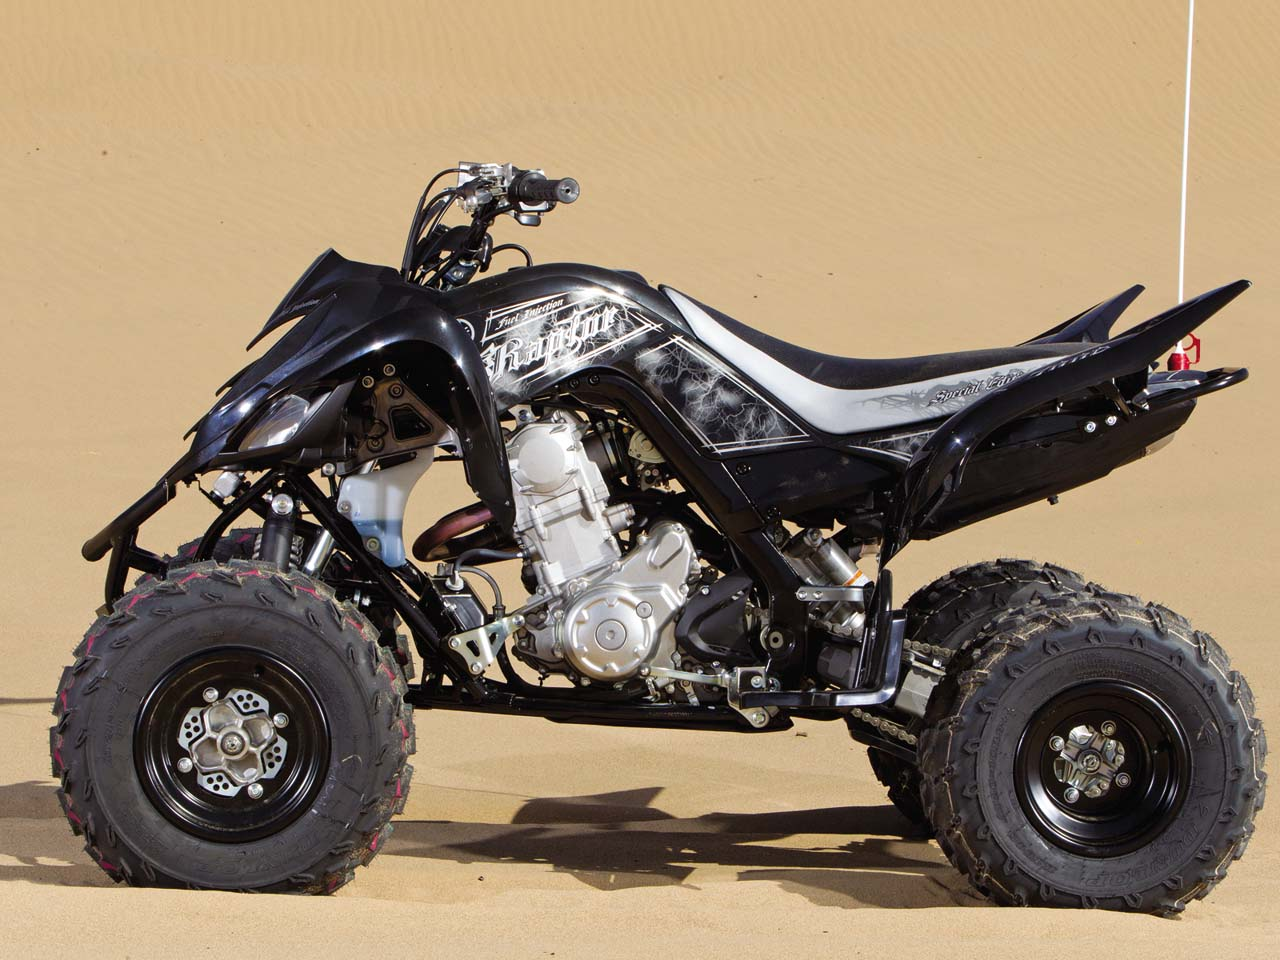 Yamaha's 2011 Special Edition Dune Event   ATV Illustrated